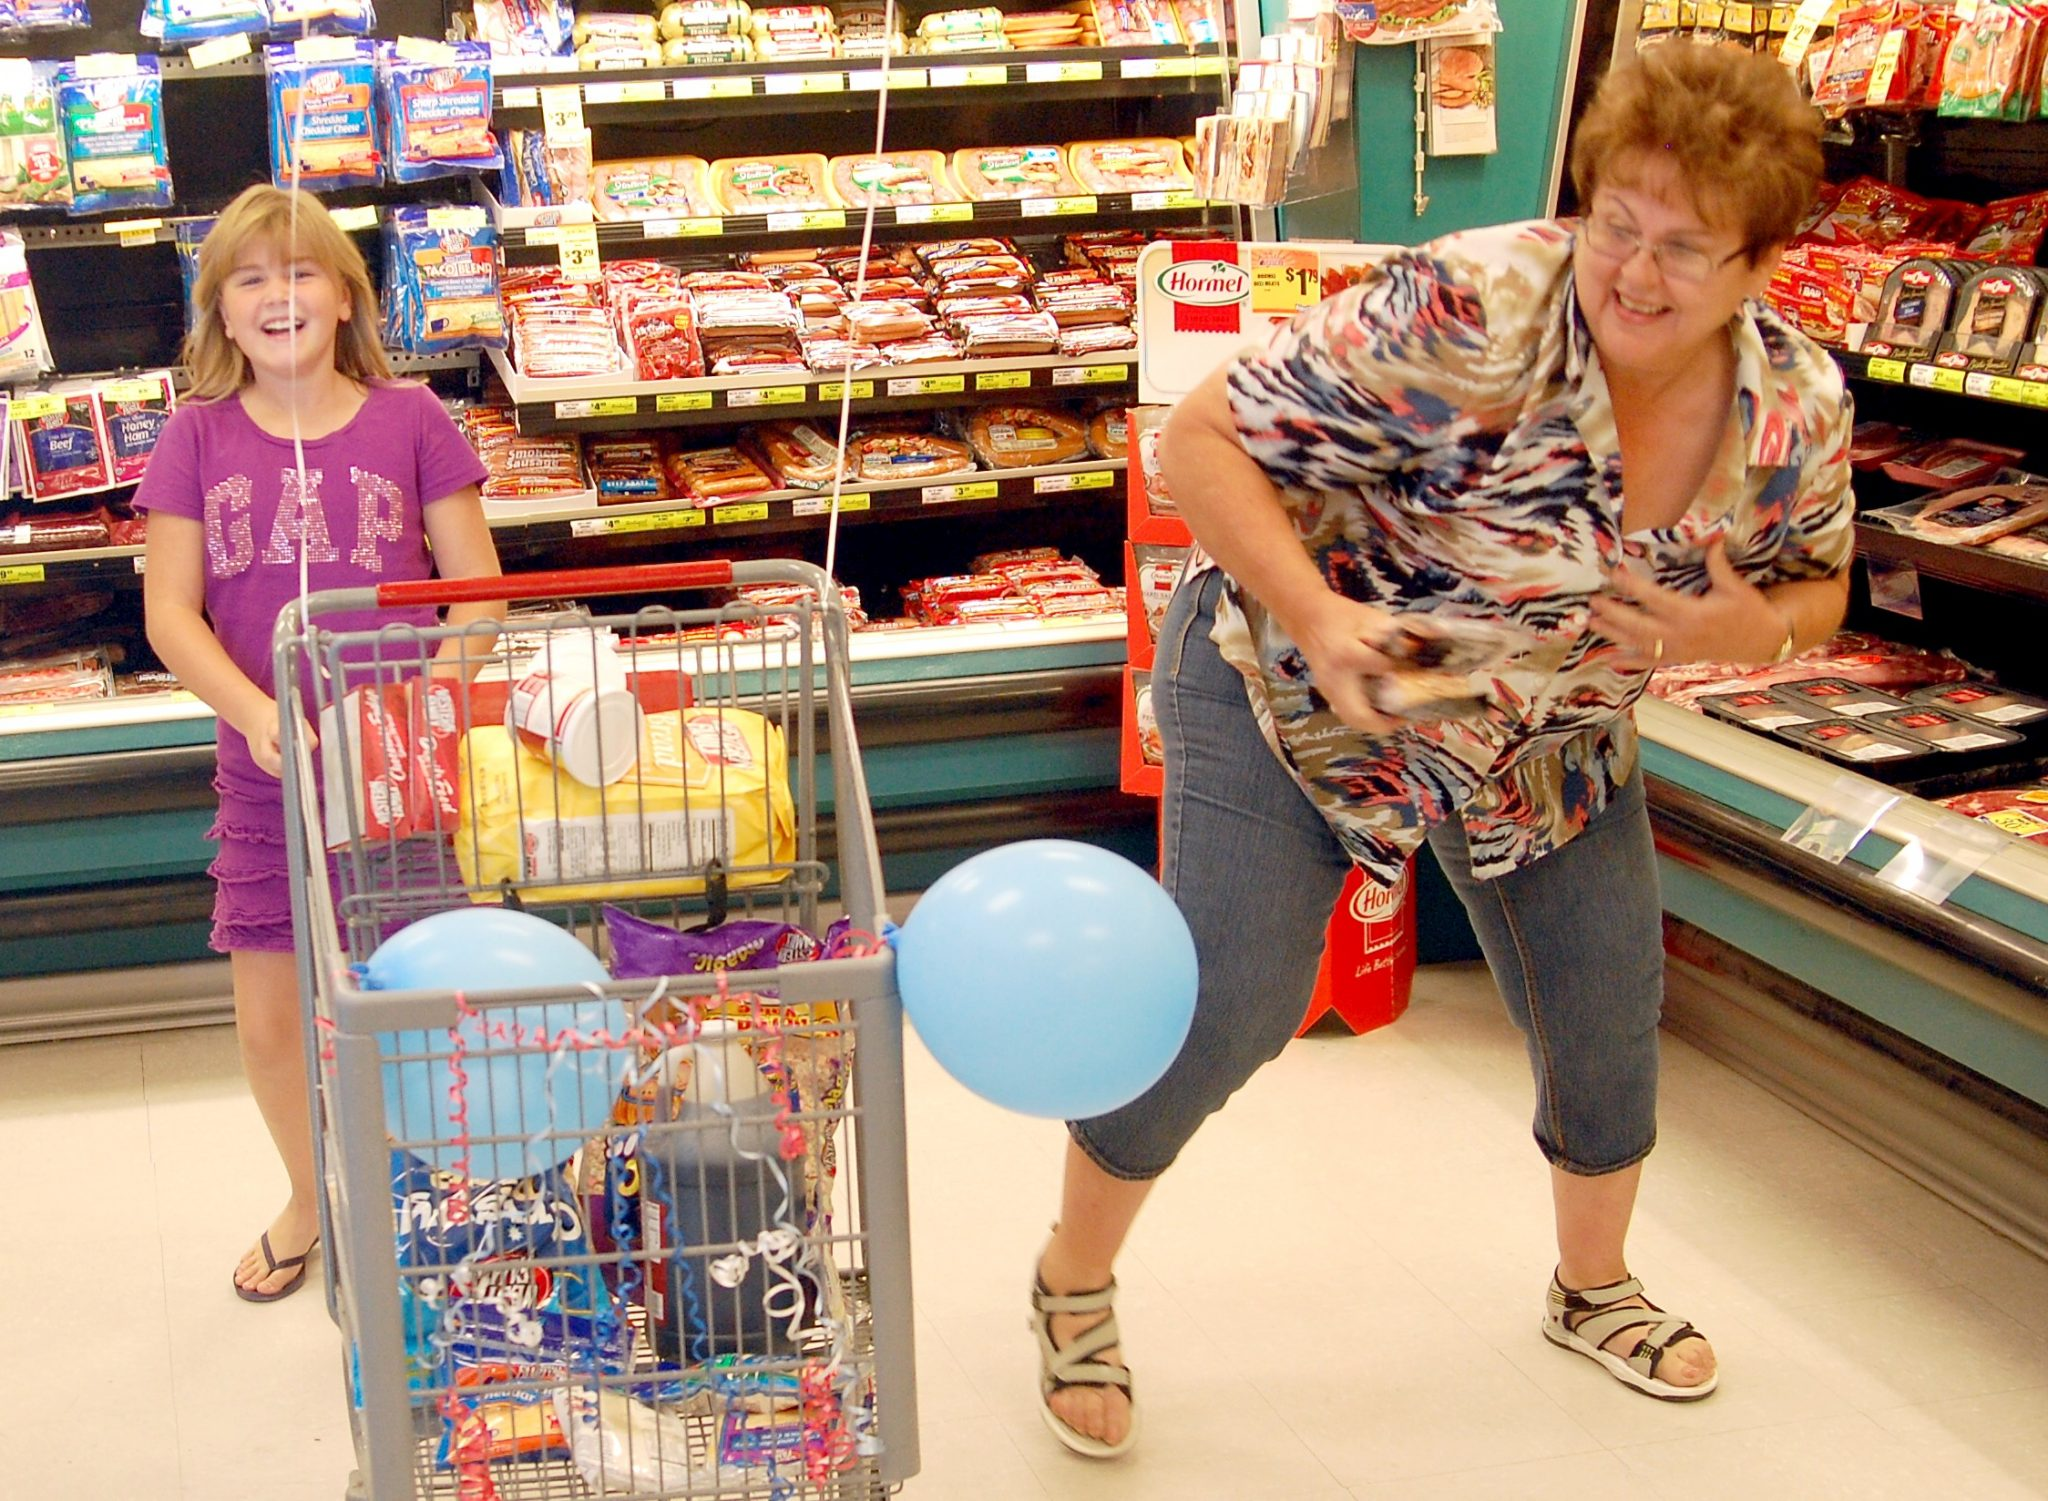 Local woman competes in shopping spree